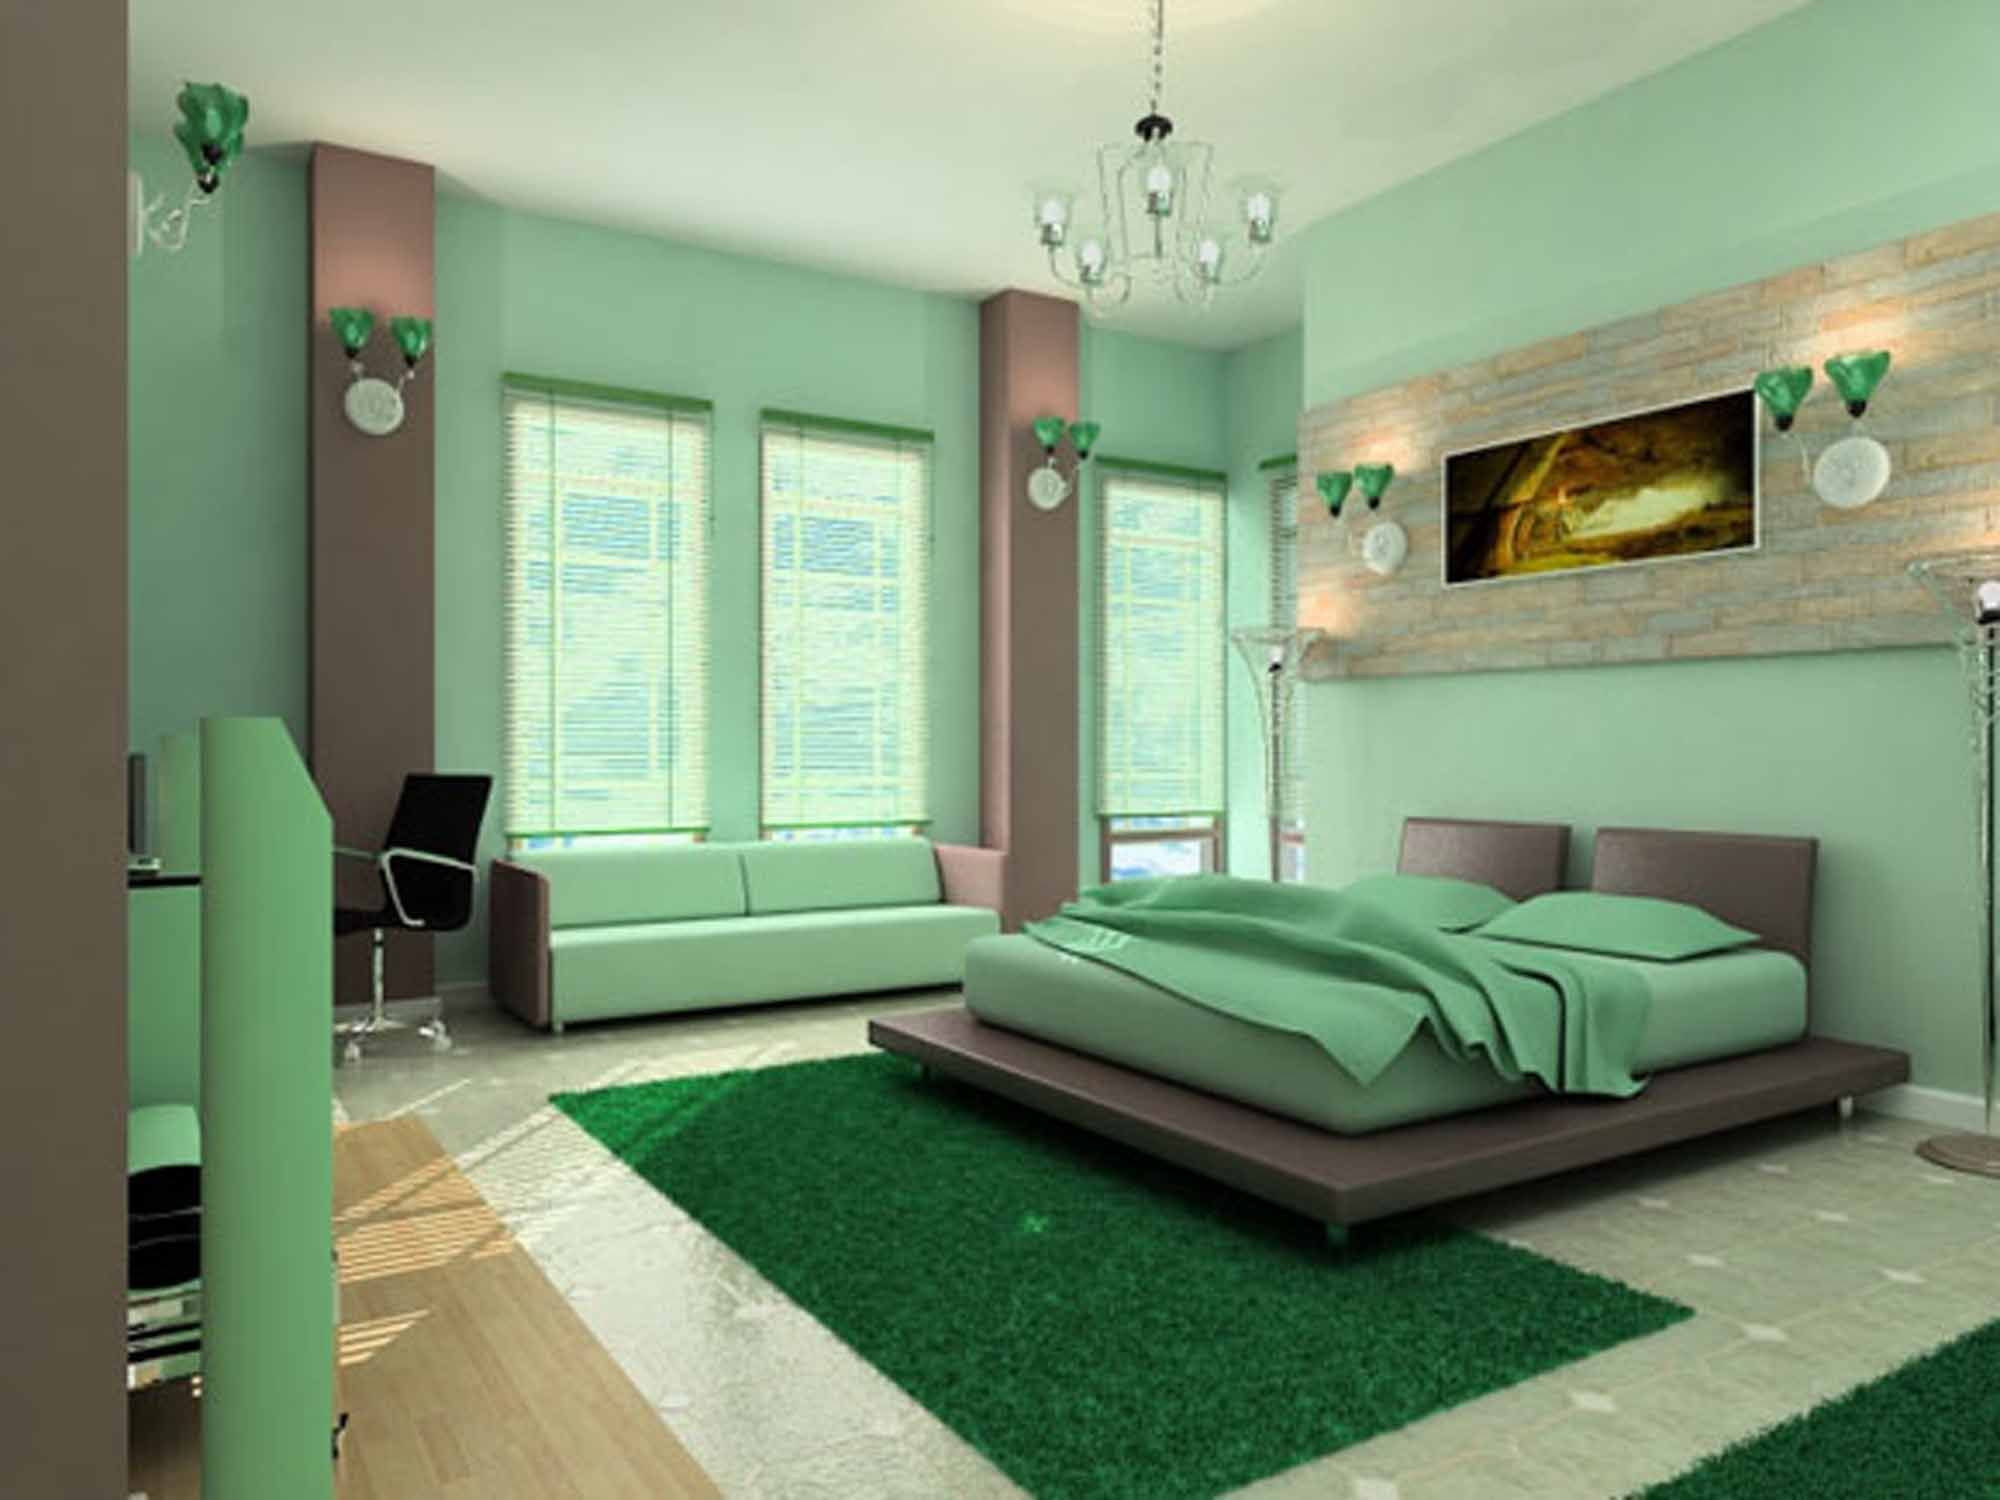 green bedroom design ideas. Master Bedroom  Small Home My Husband to be and Own Room